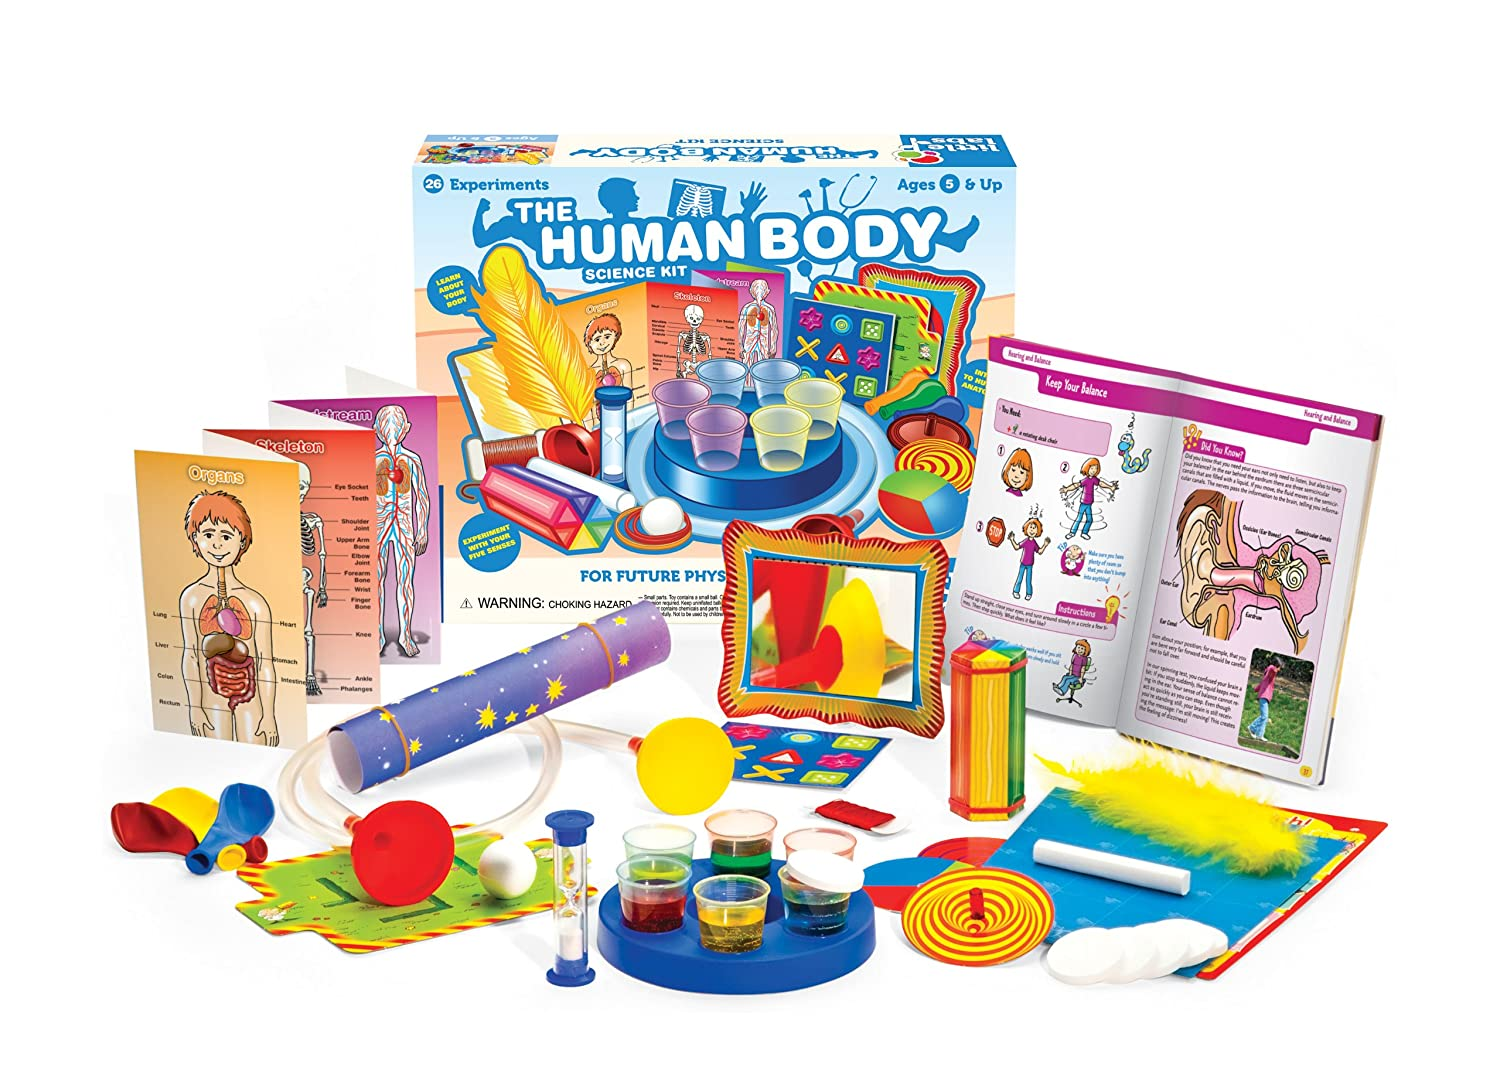 Thames & Kosmos Little Labs: The Human Body